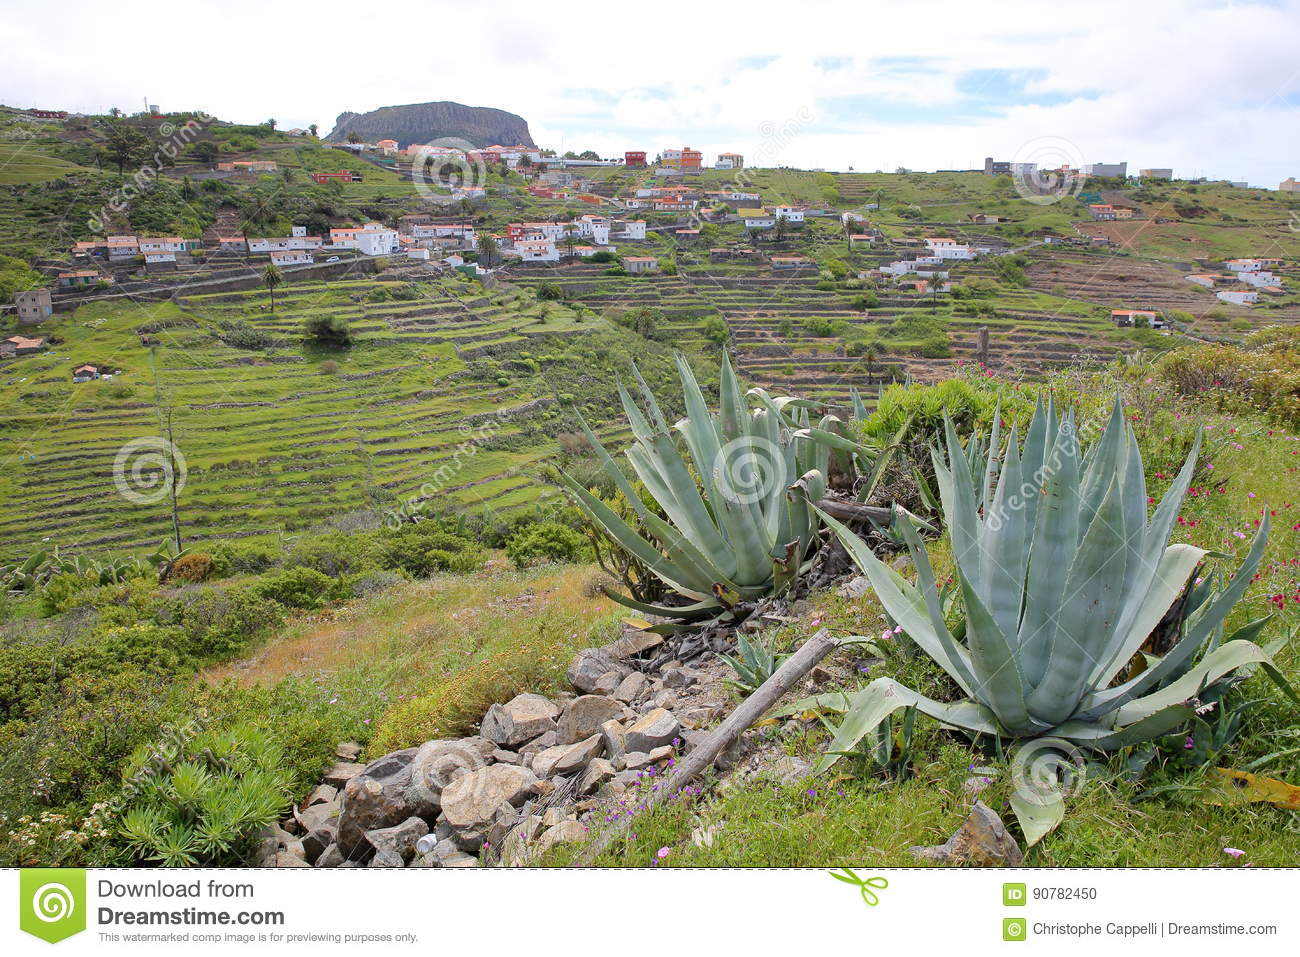 CHIPUDE, LA GOMERA, SPAIN: General view of the terraced fields of Chipude with Fortaleza mountain in the background and Aloe Vera